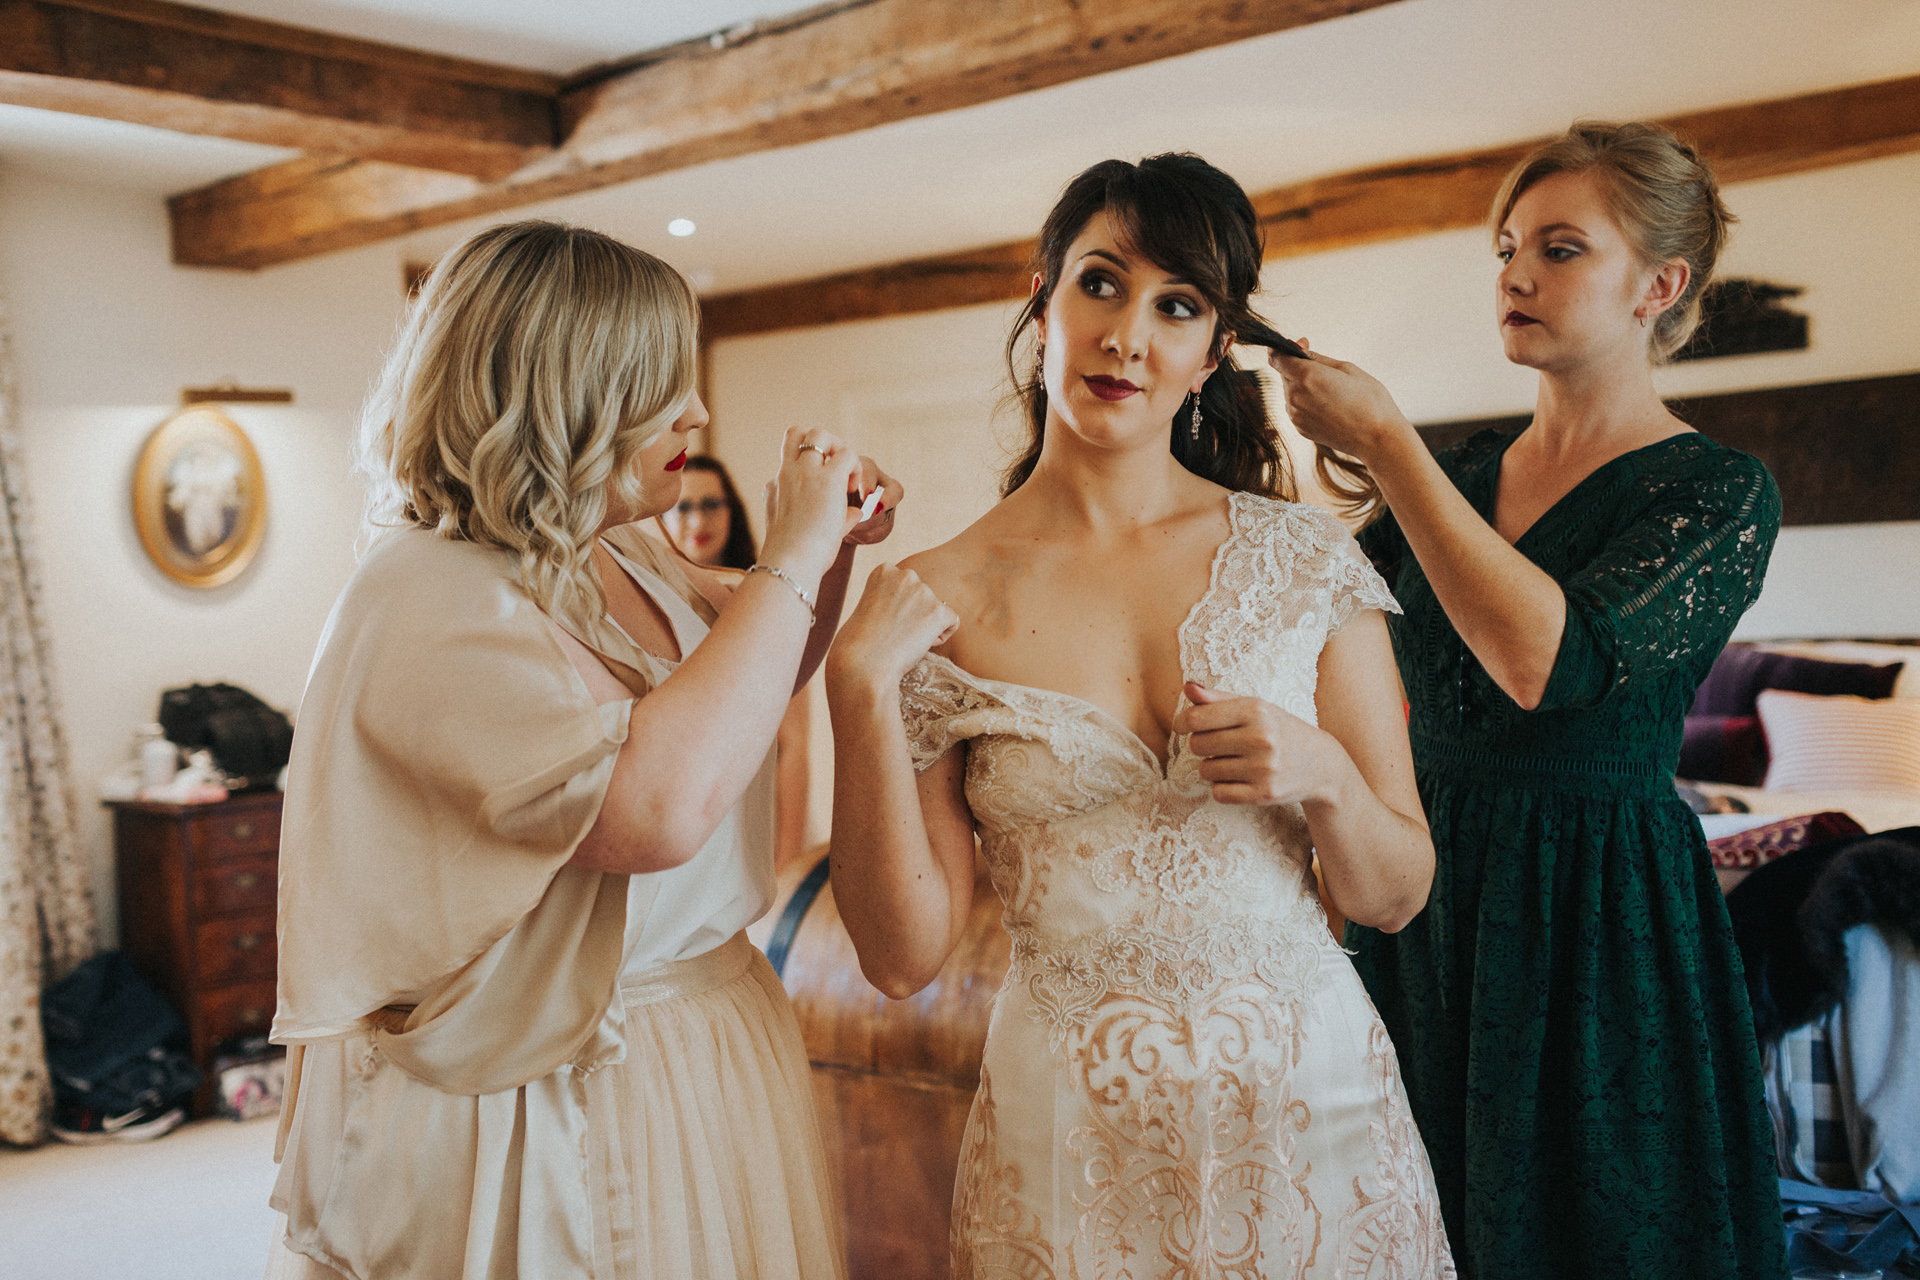 Bridesmaids fuss over Bride as she takes in the moment.